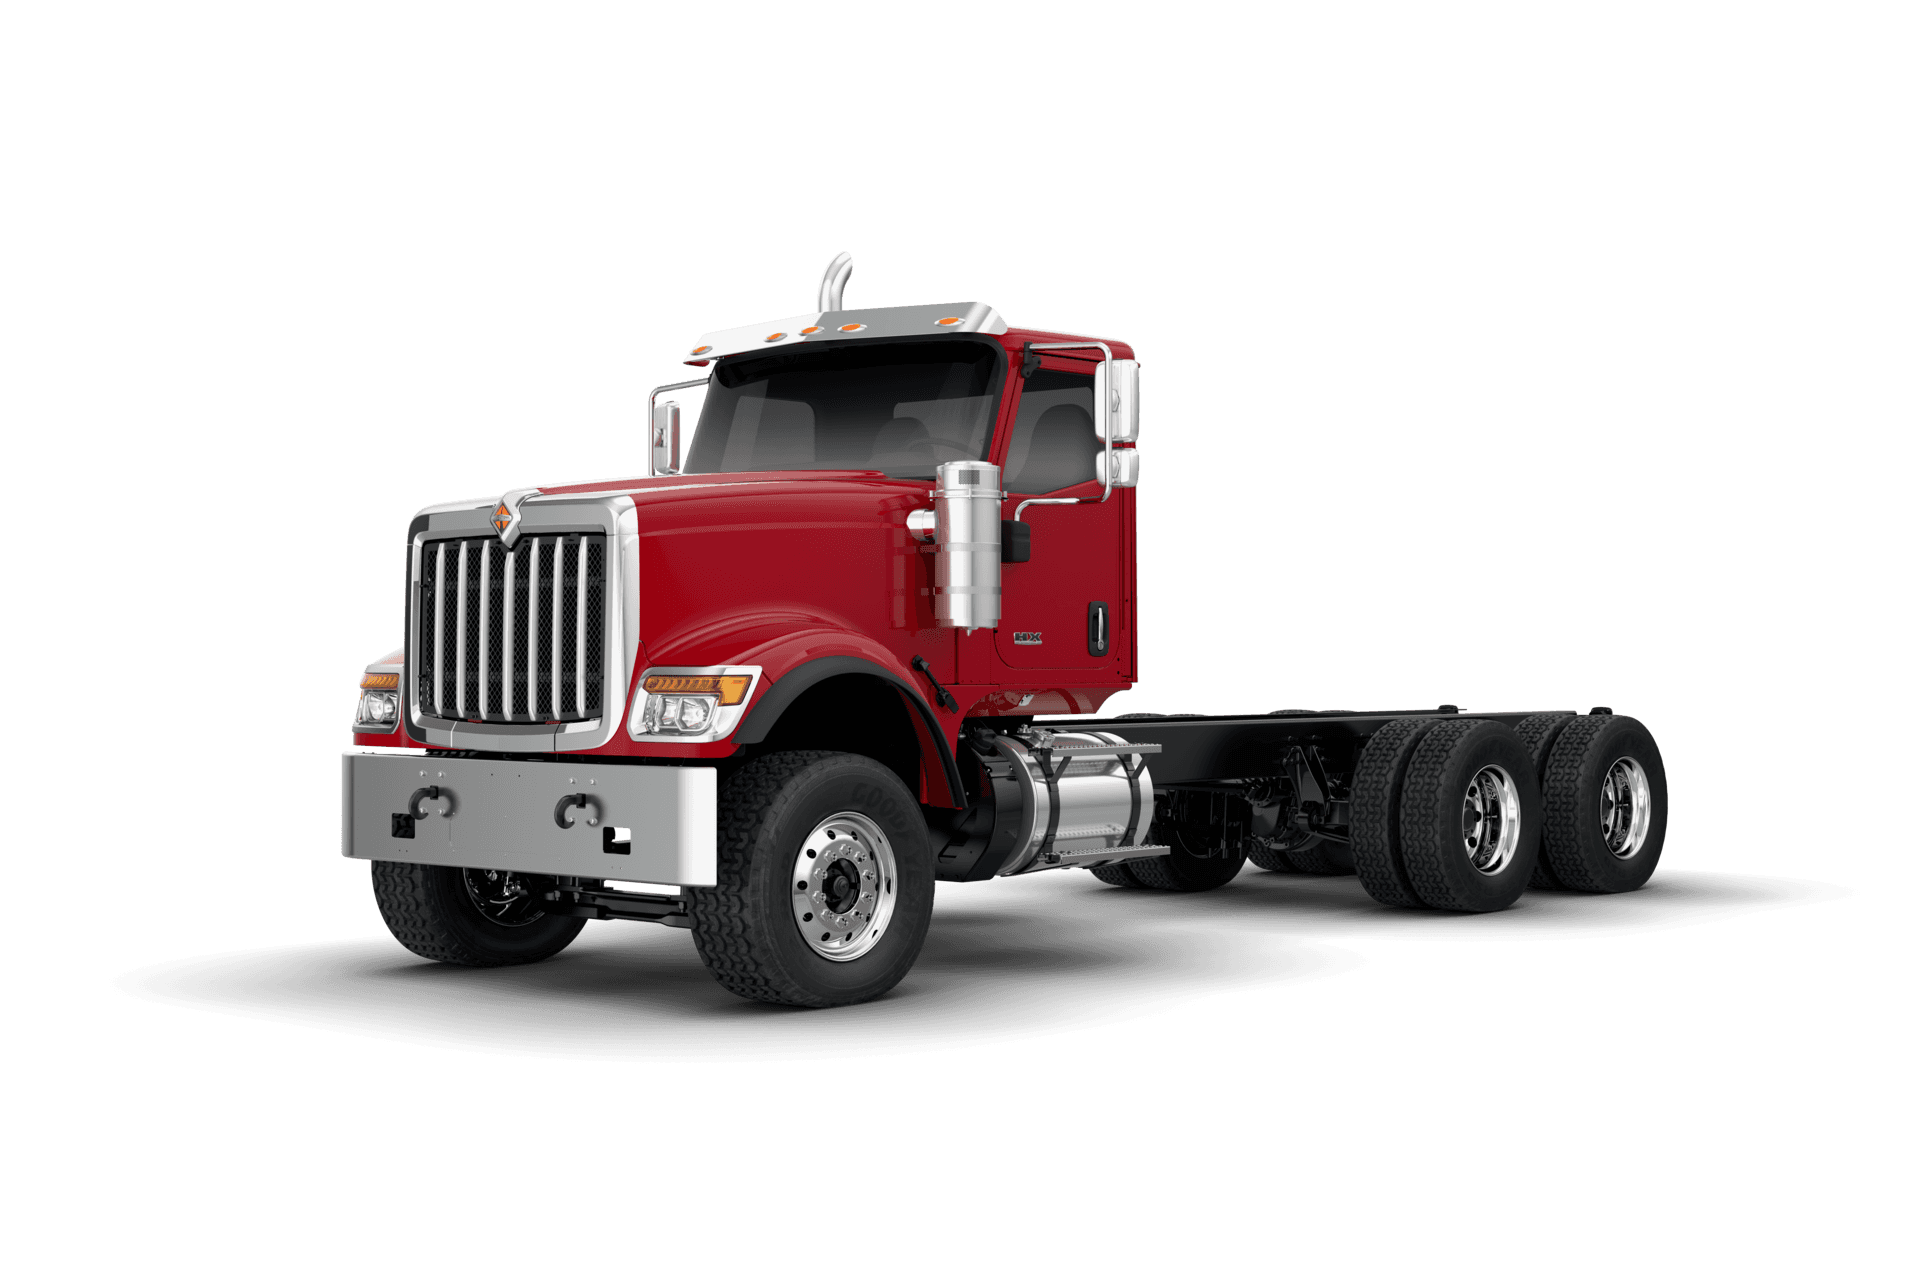 Car and truck clipart free library International HX 520 truck PNG Clipart - Download free images in PNG free library